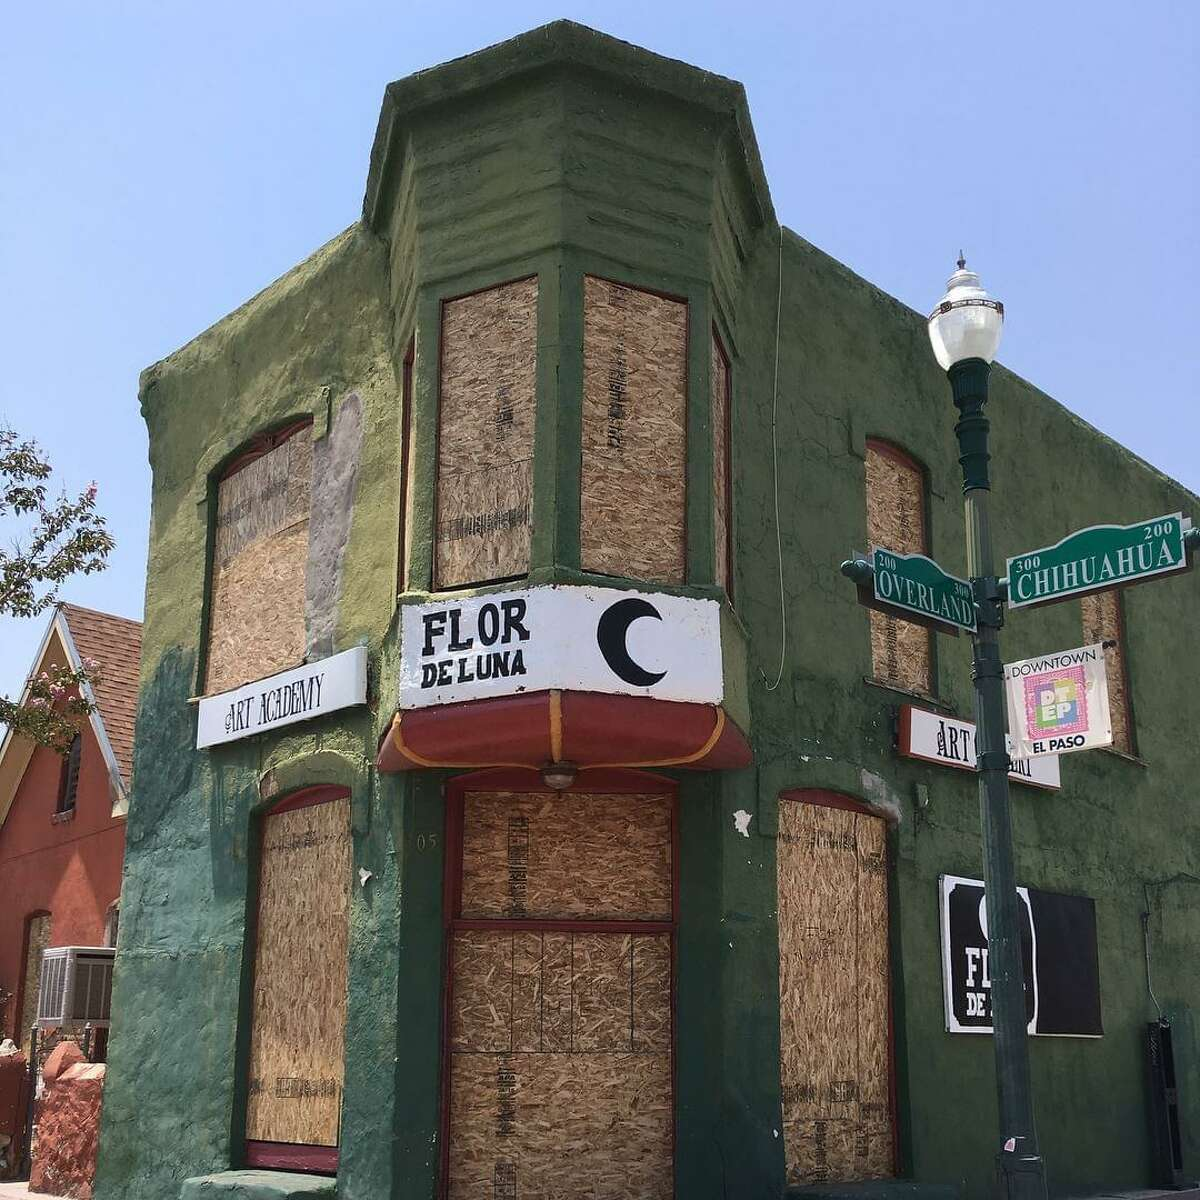 A building in Duranguito, a Latino neighborhood in El Paso, Texas, is one of the places recommended by the Latino Heritage Scholars, an initiative of the Hispanic Access Foundation, to be designated as a heritage and historic site. In a report released on July 7, 2021, the organization criticized a severe underrepresentation of sites of significance for minority communities in the National Register of Historic Places.